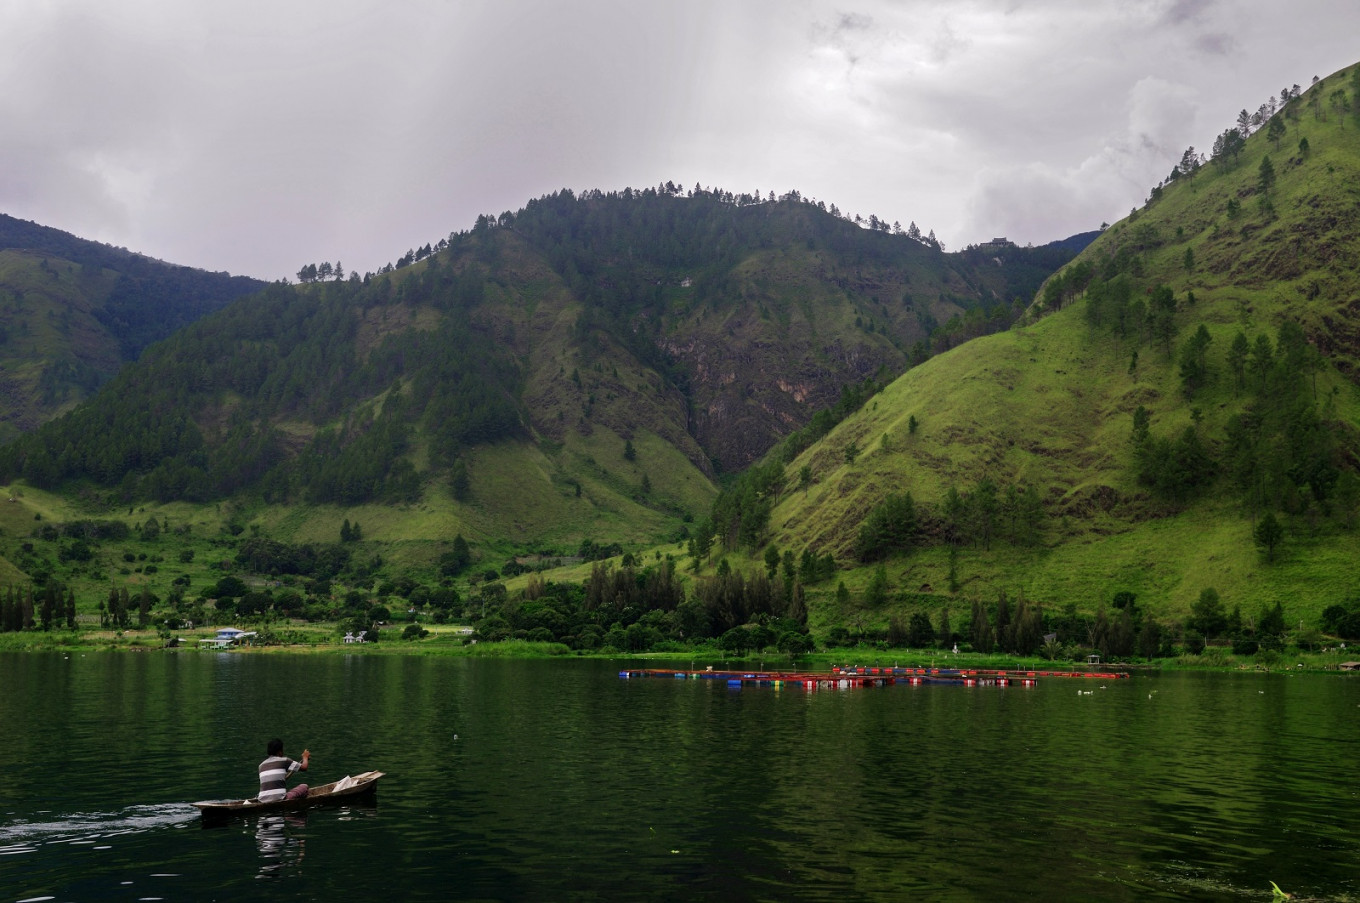 Lake Toba Festival to be scrapped after failing to attract visitors